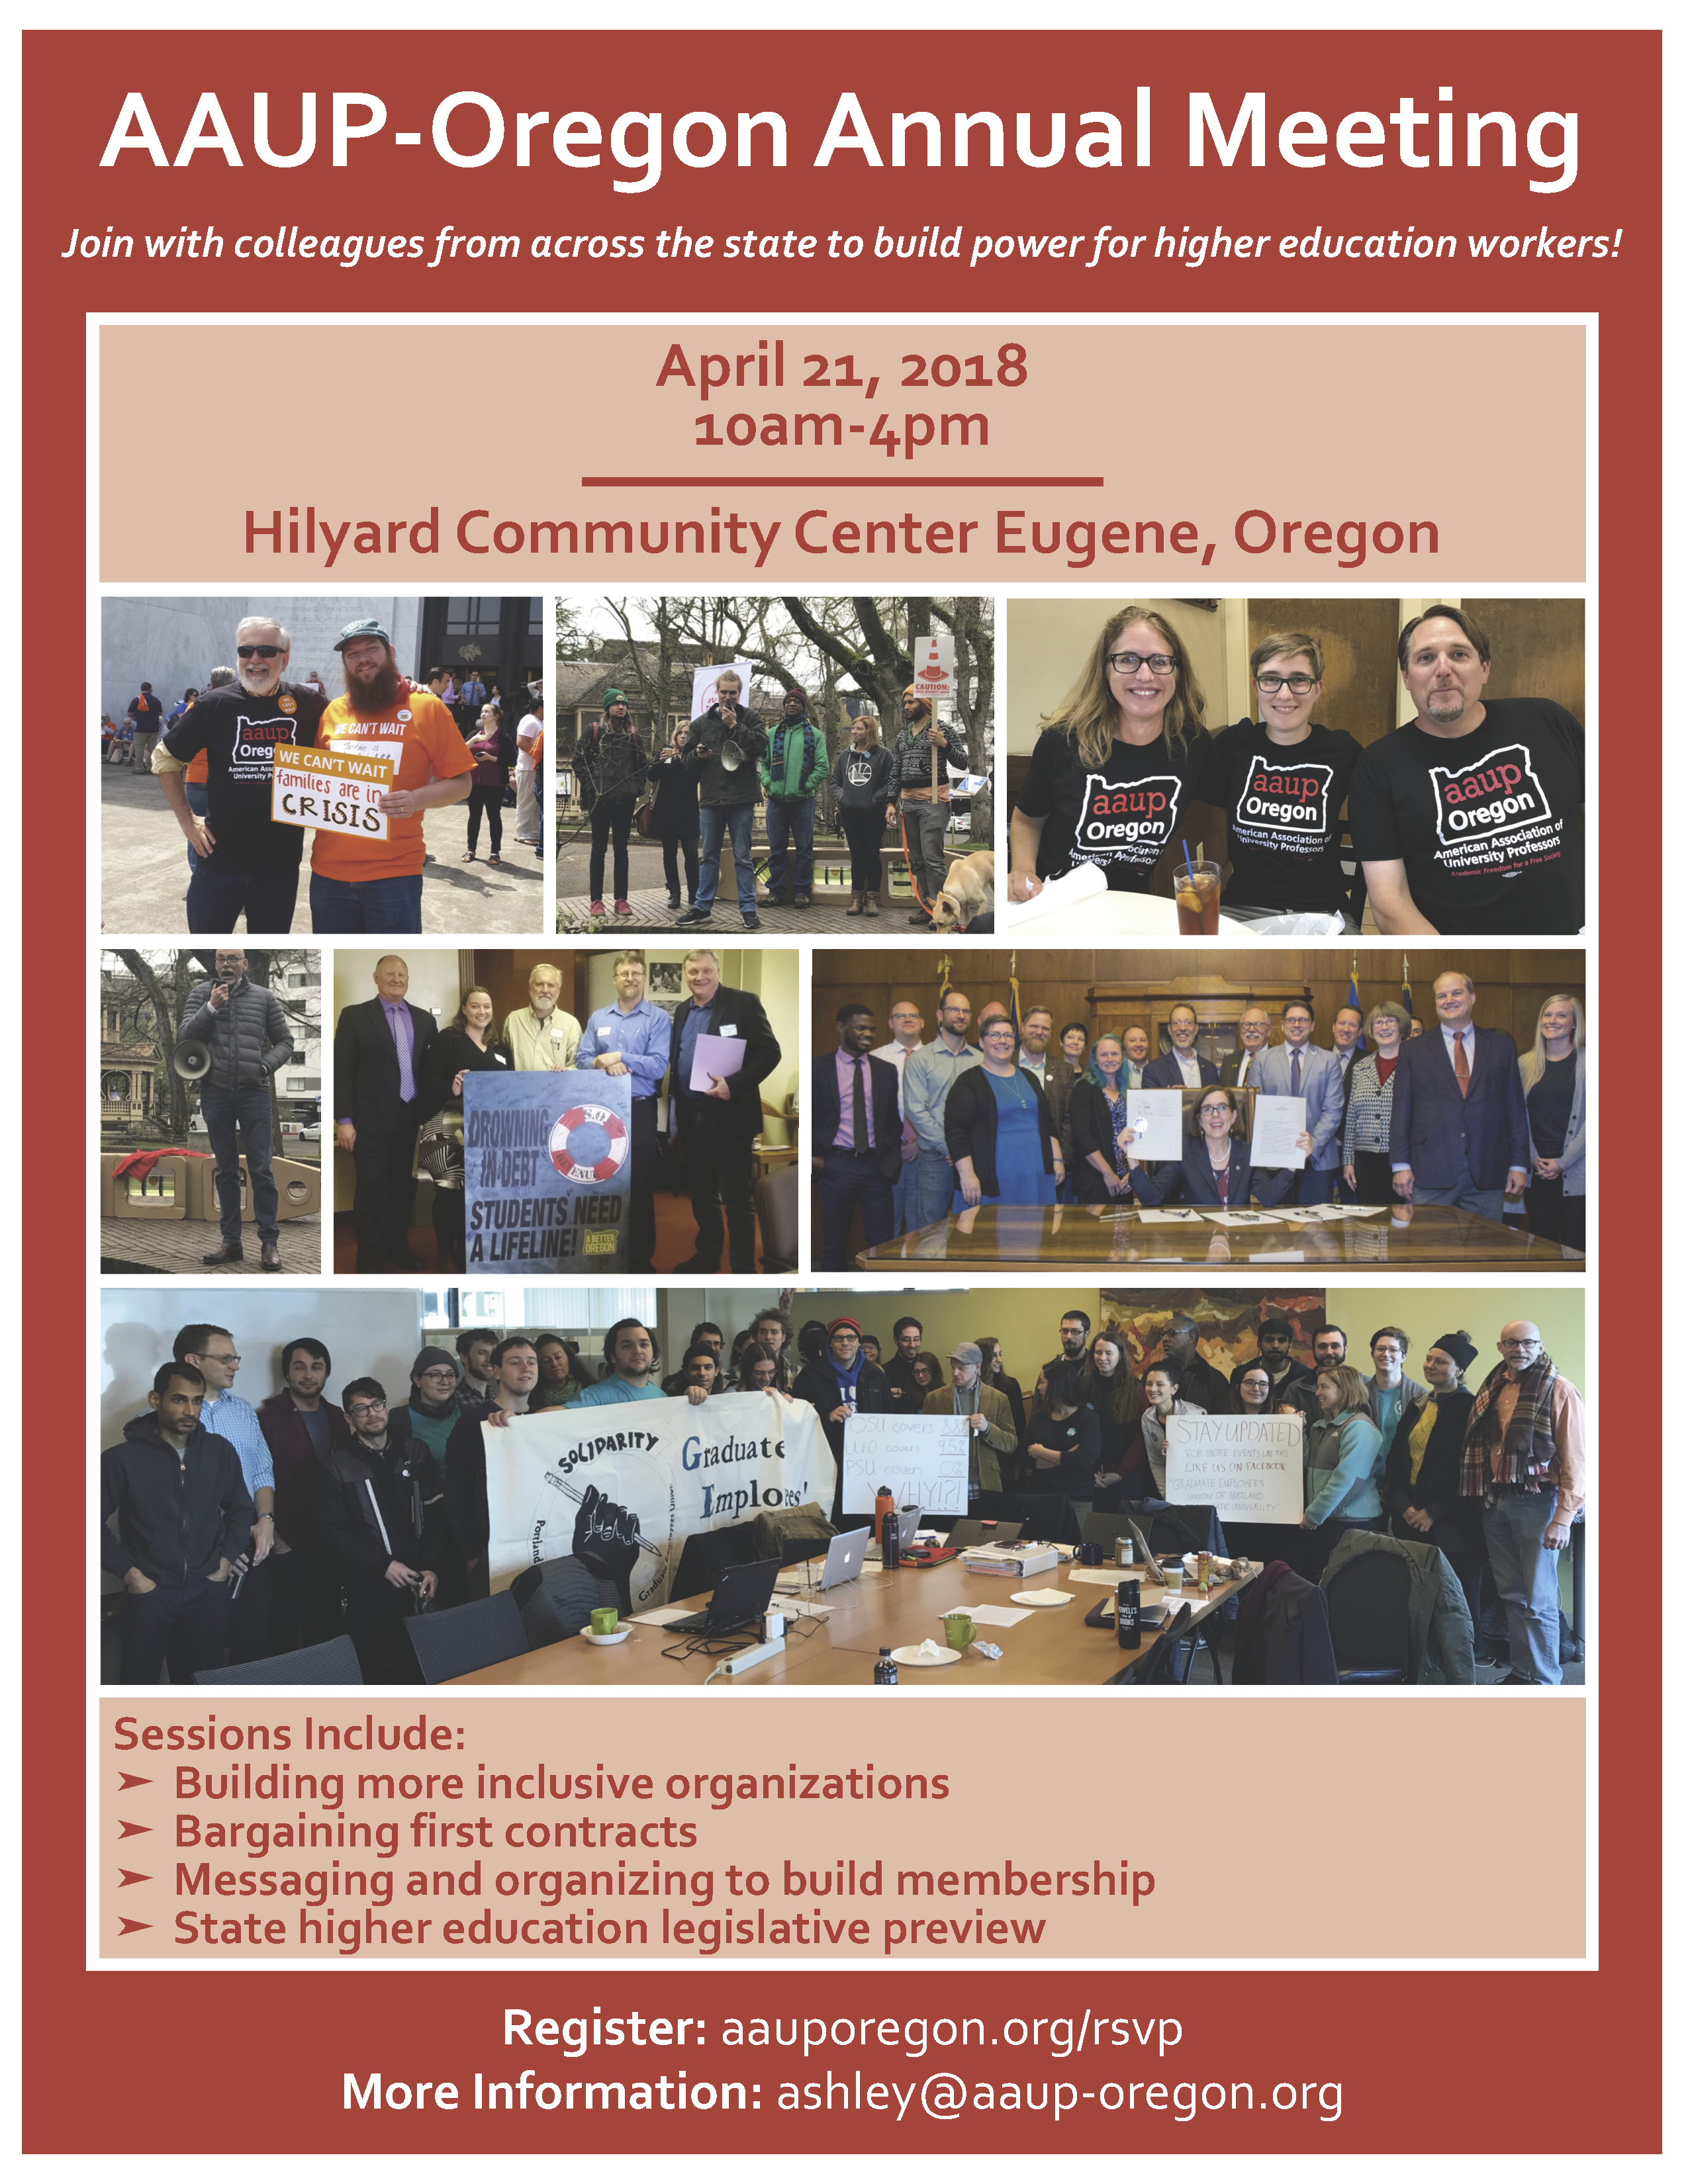 AAUP-Oregon Annual Meeting April 21 10-4 Please sign up